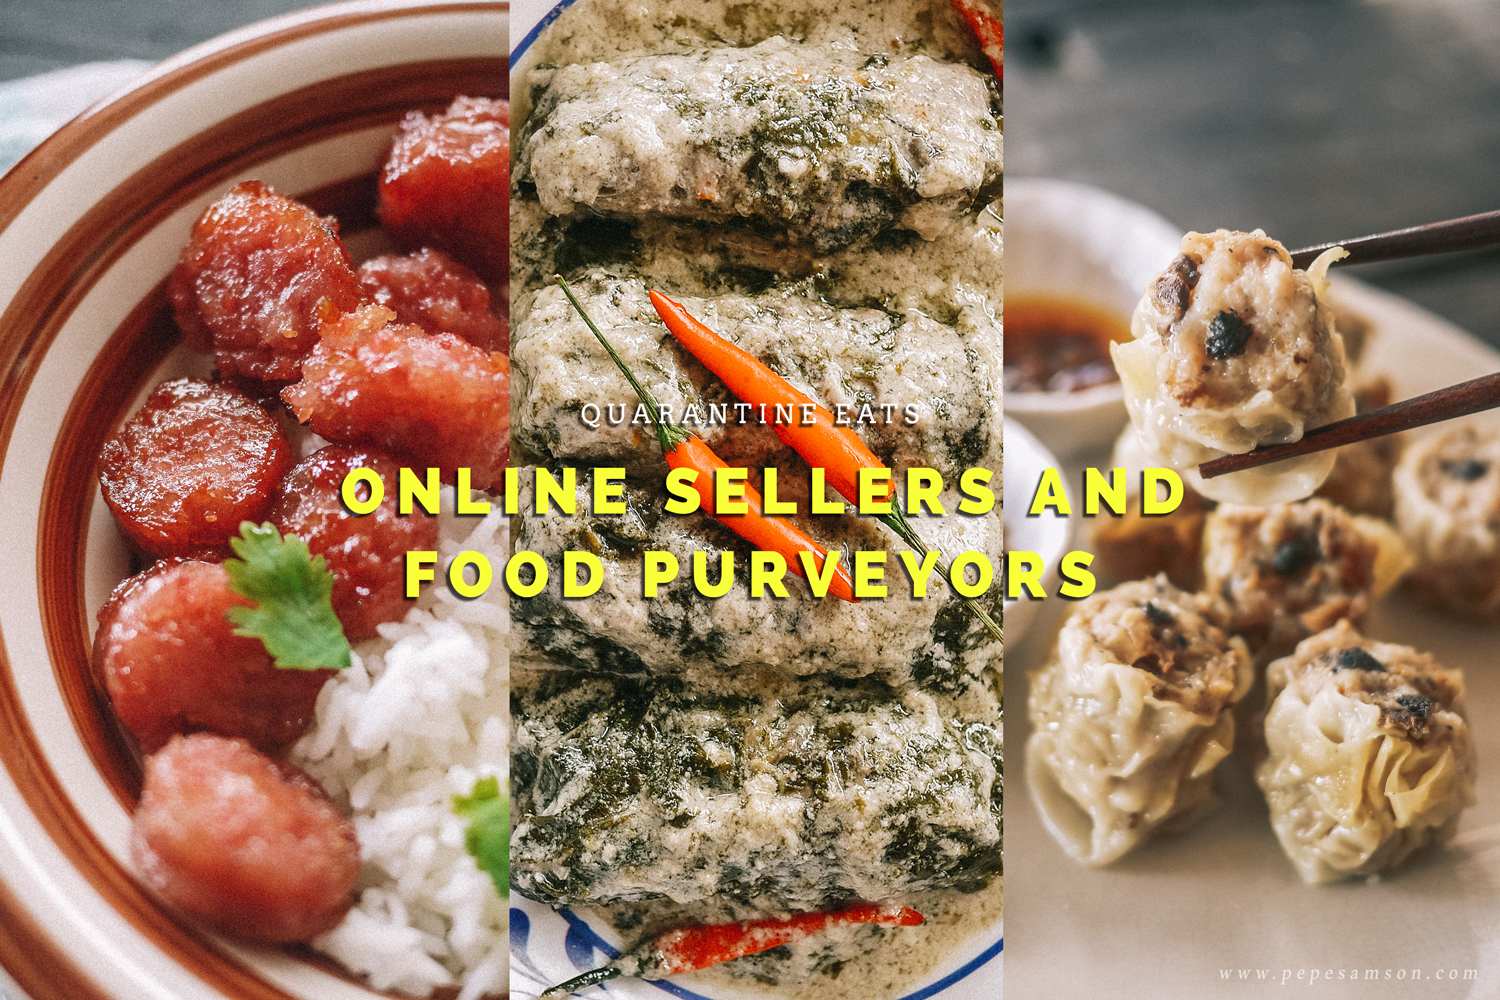 Online Sellers and Food Purveyors Selling Ready-to-Cook Meals